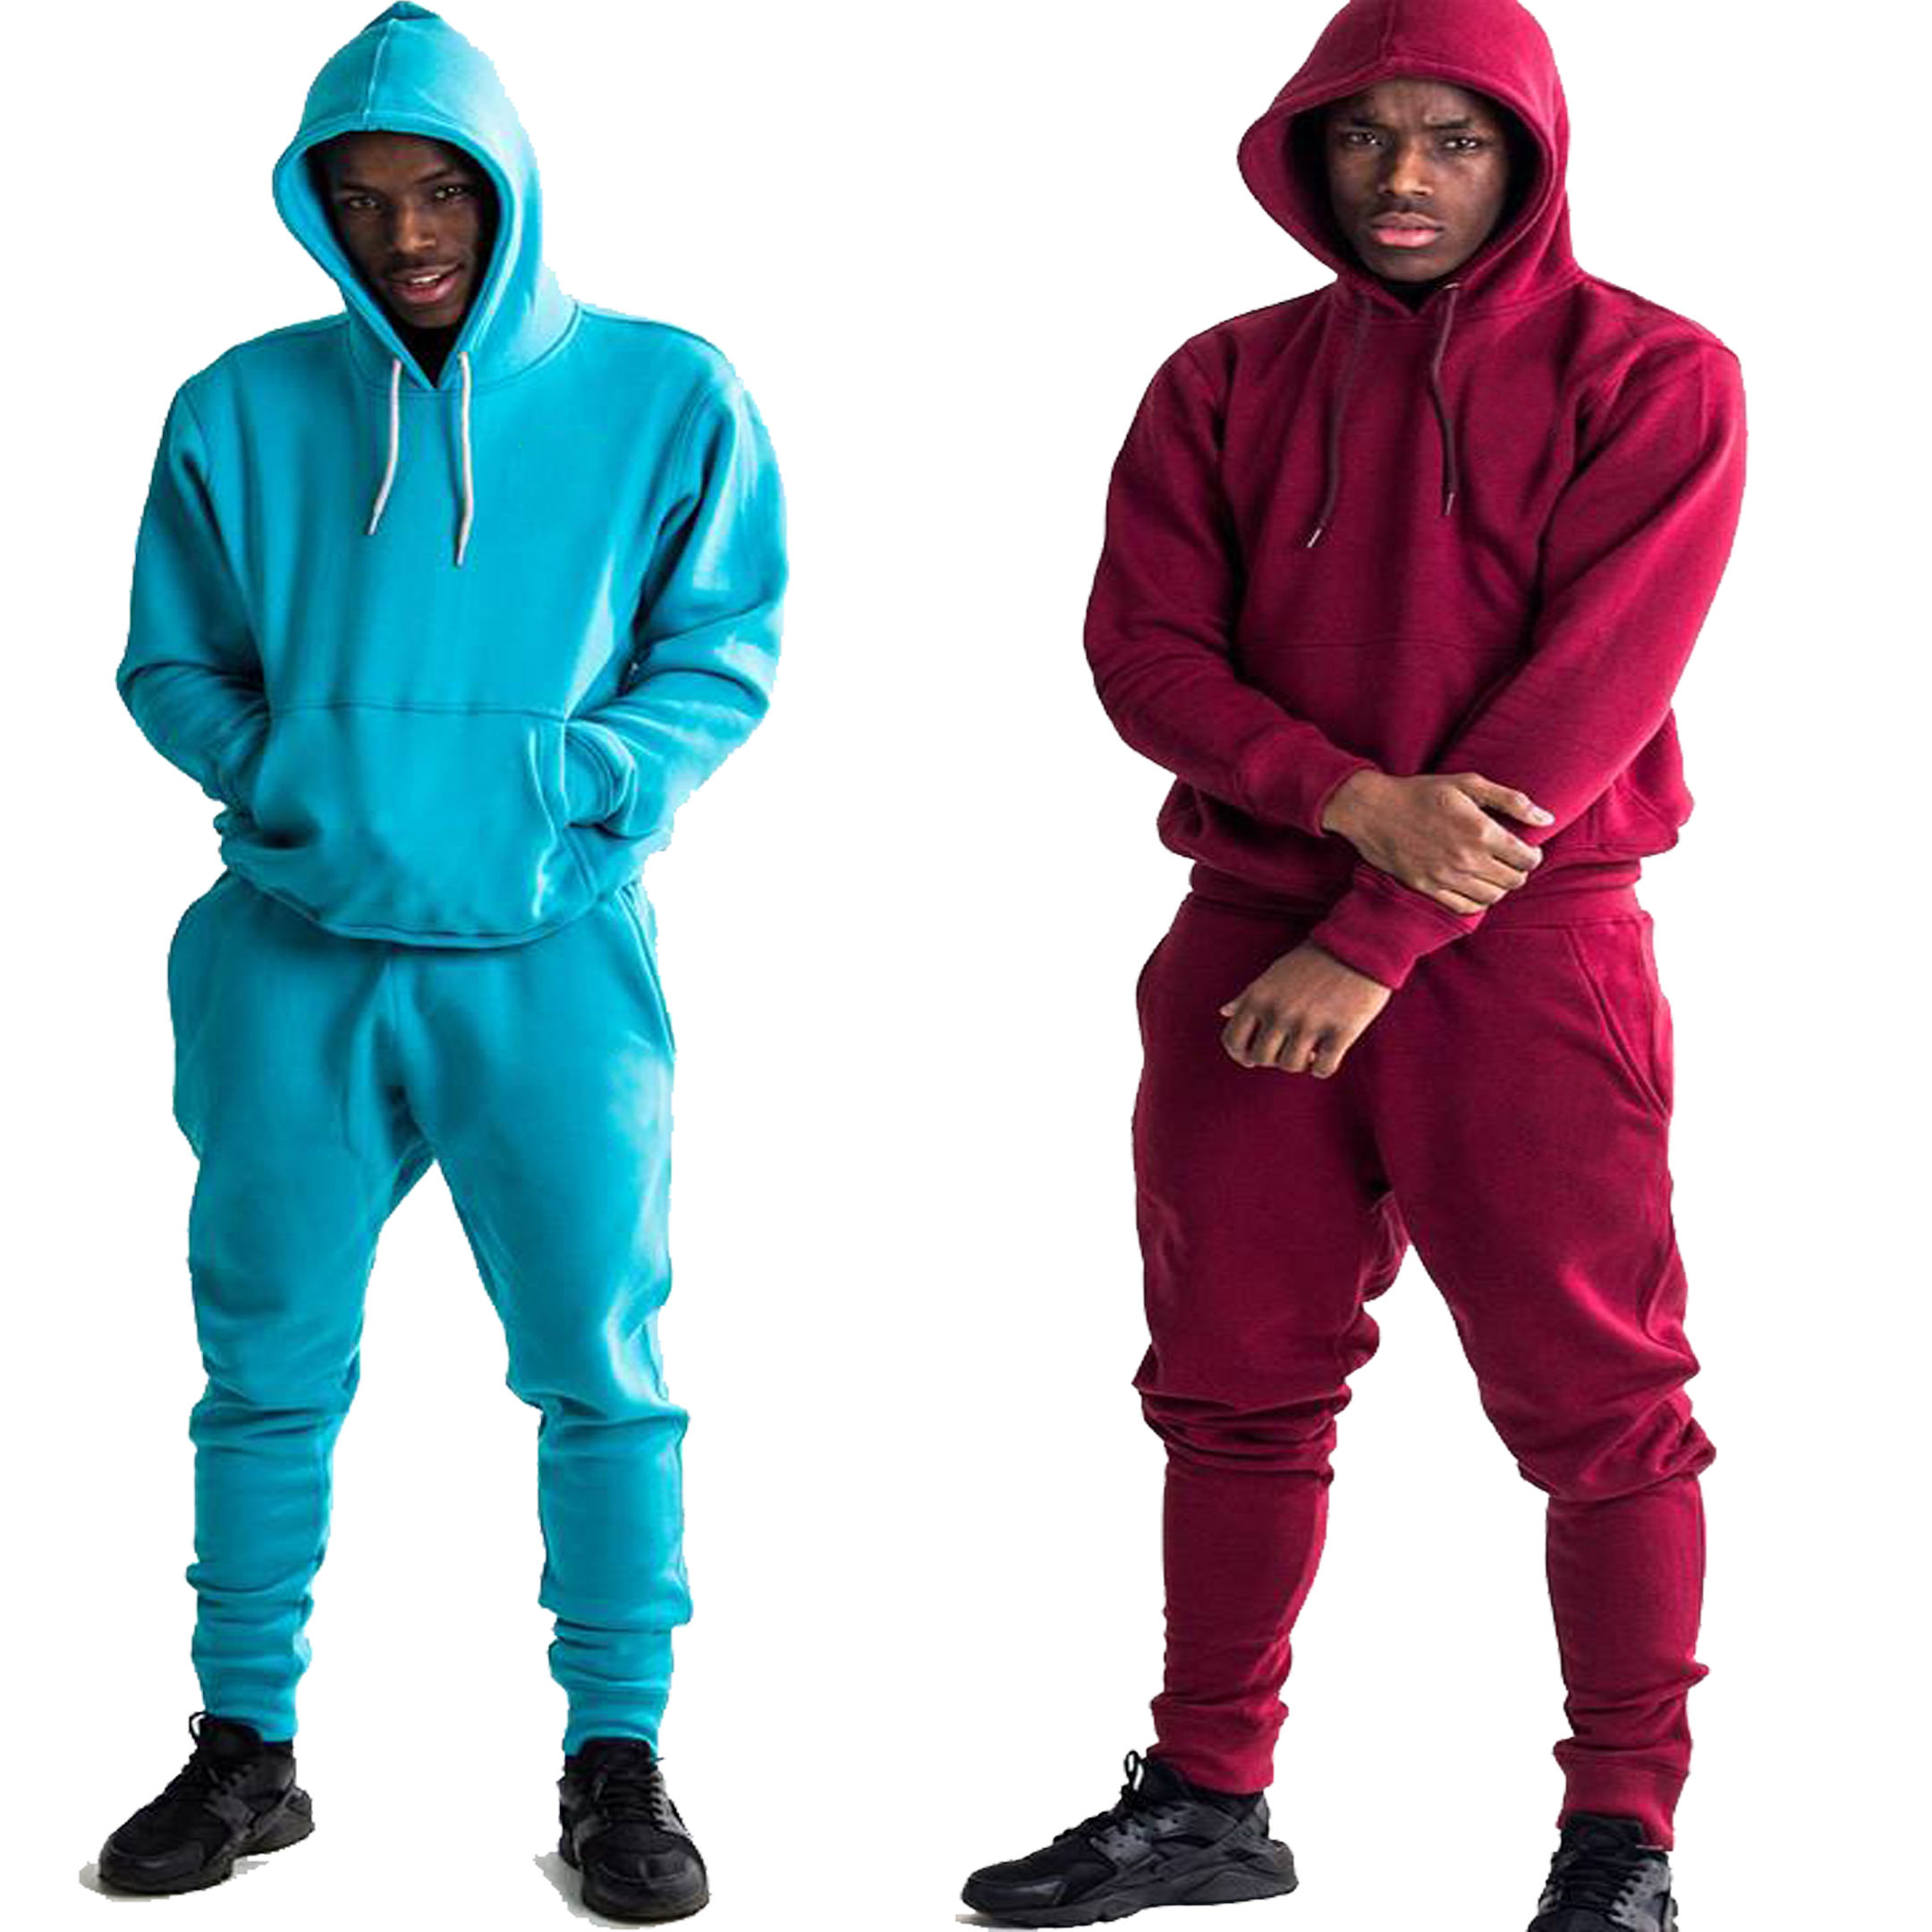 Unisex Casual Wear Winter Thick Cotton Fleece Tracksuit Sweatsuit Jogging Suit